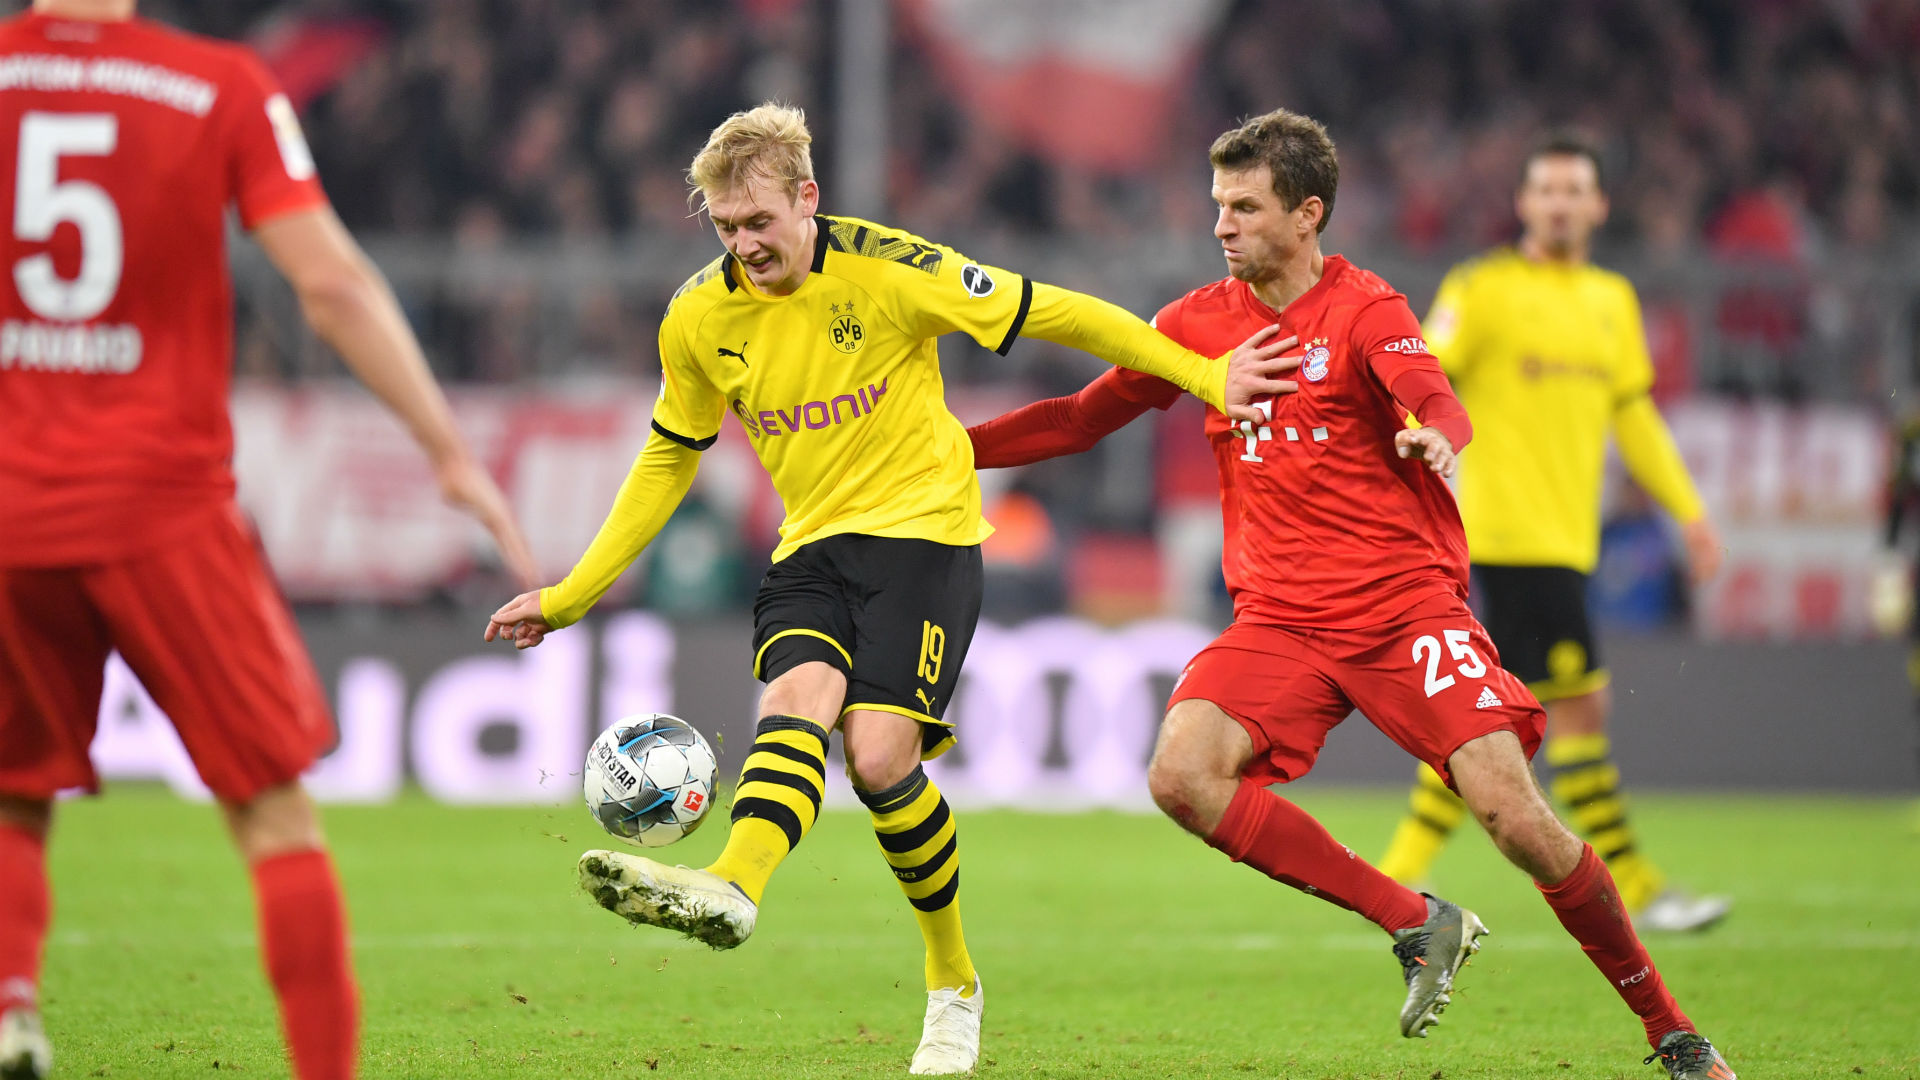 Dortmund v Bayern: Brandt ready for centre stage in Klassiker